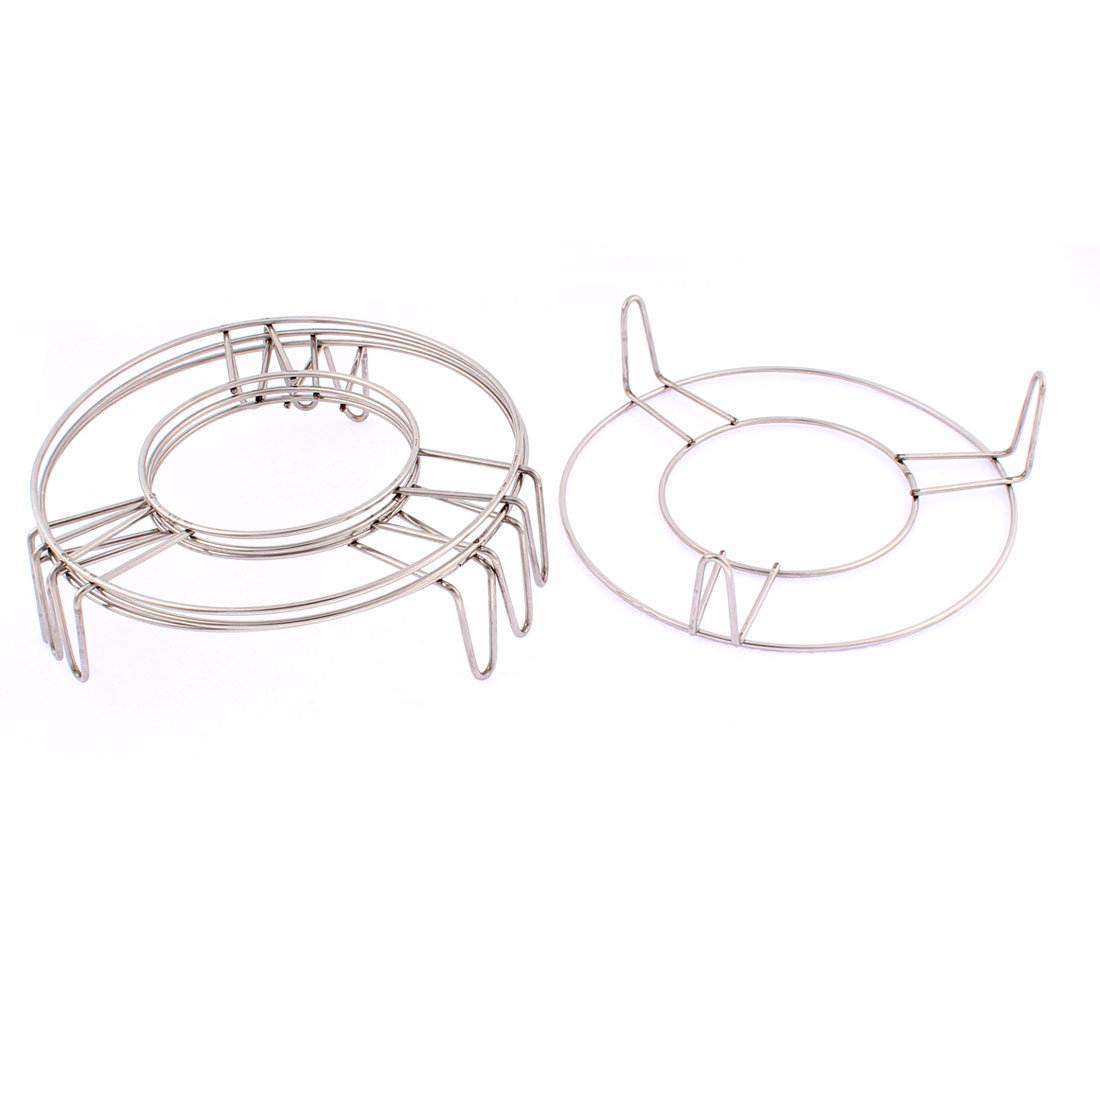 Kitchen Stainless Steel Round Steaming Rack Stand 7 Inch x 2 Inch 4 Pcs